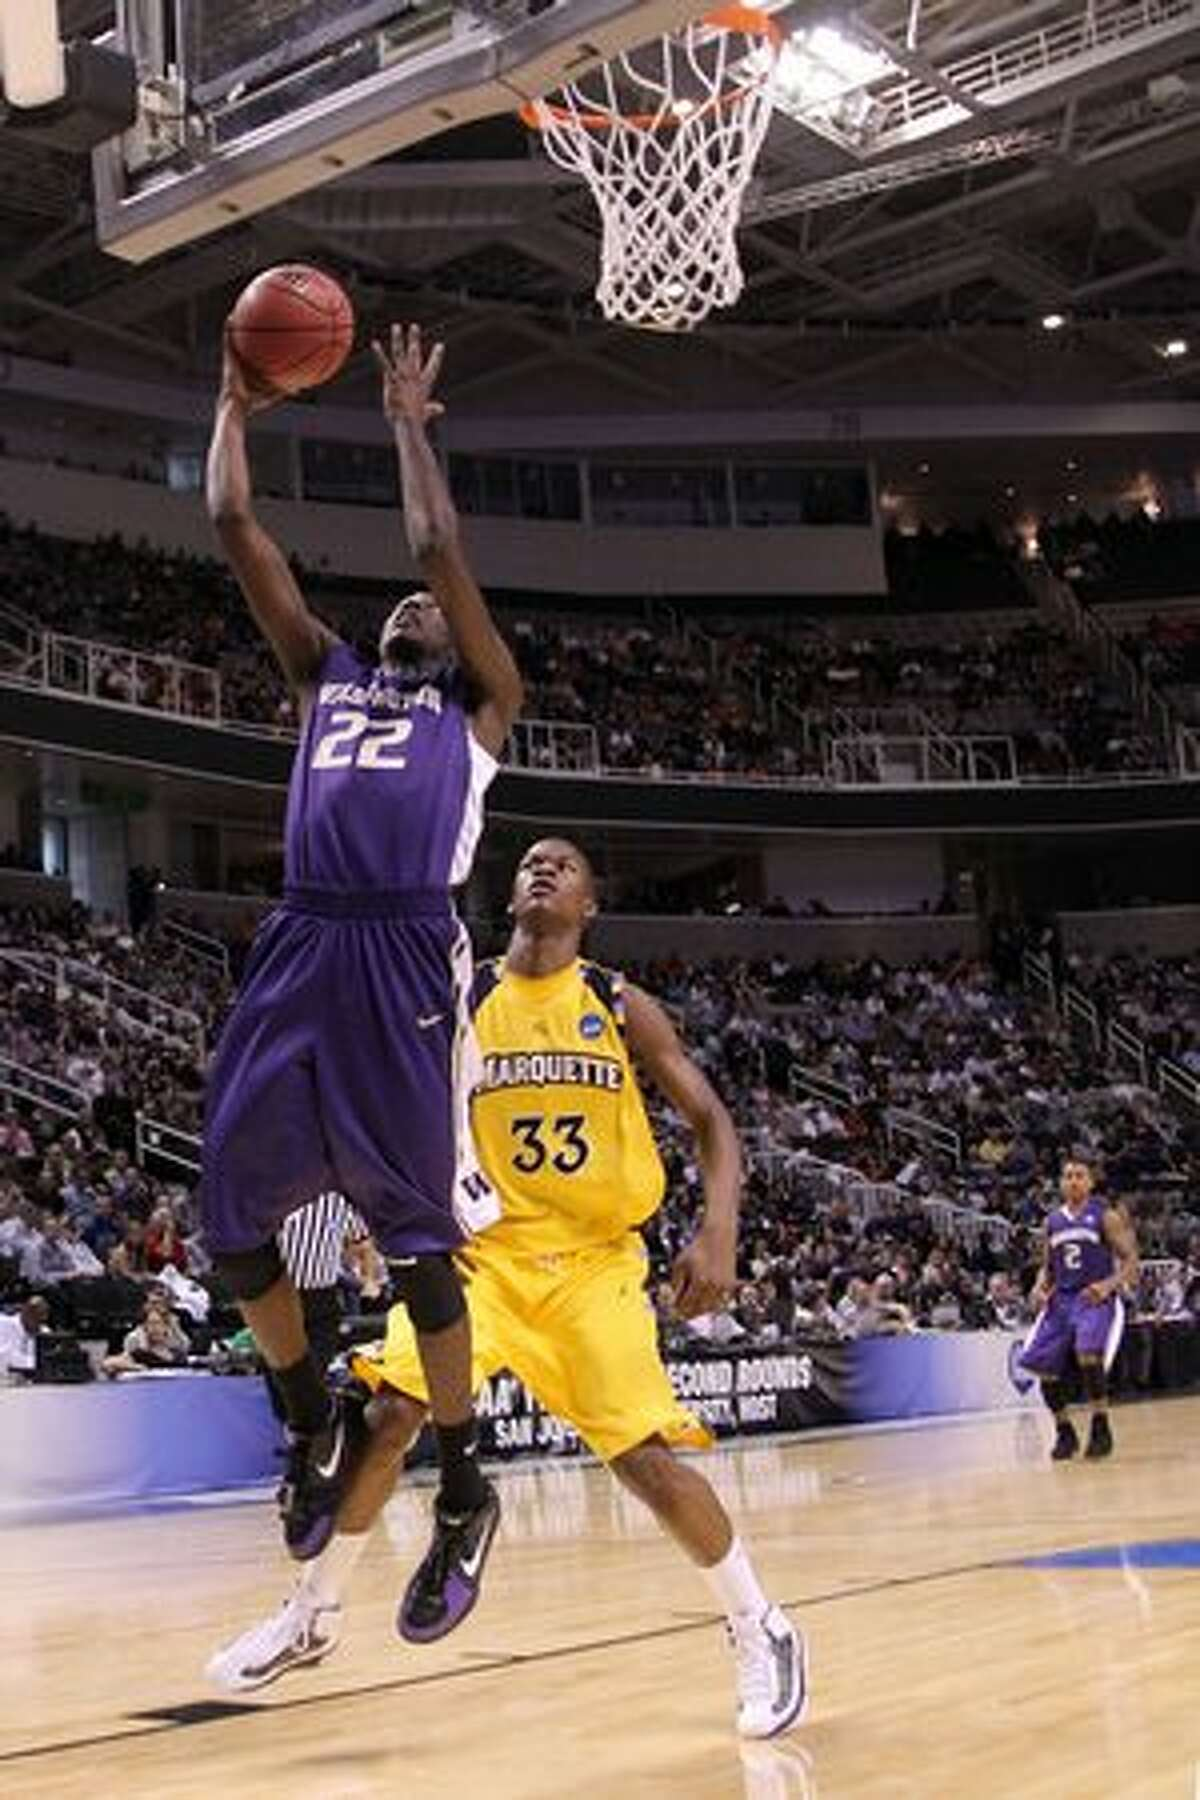 Forward Justin Holiday #22 of the Washington Huskies goes up for a shot against the Marquette Golden Eagles.